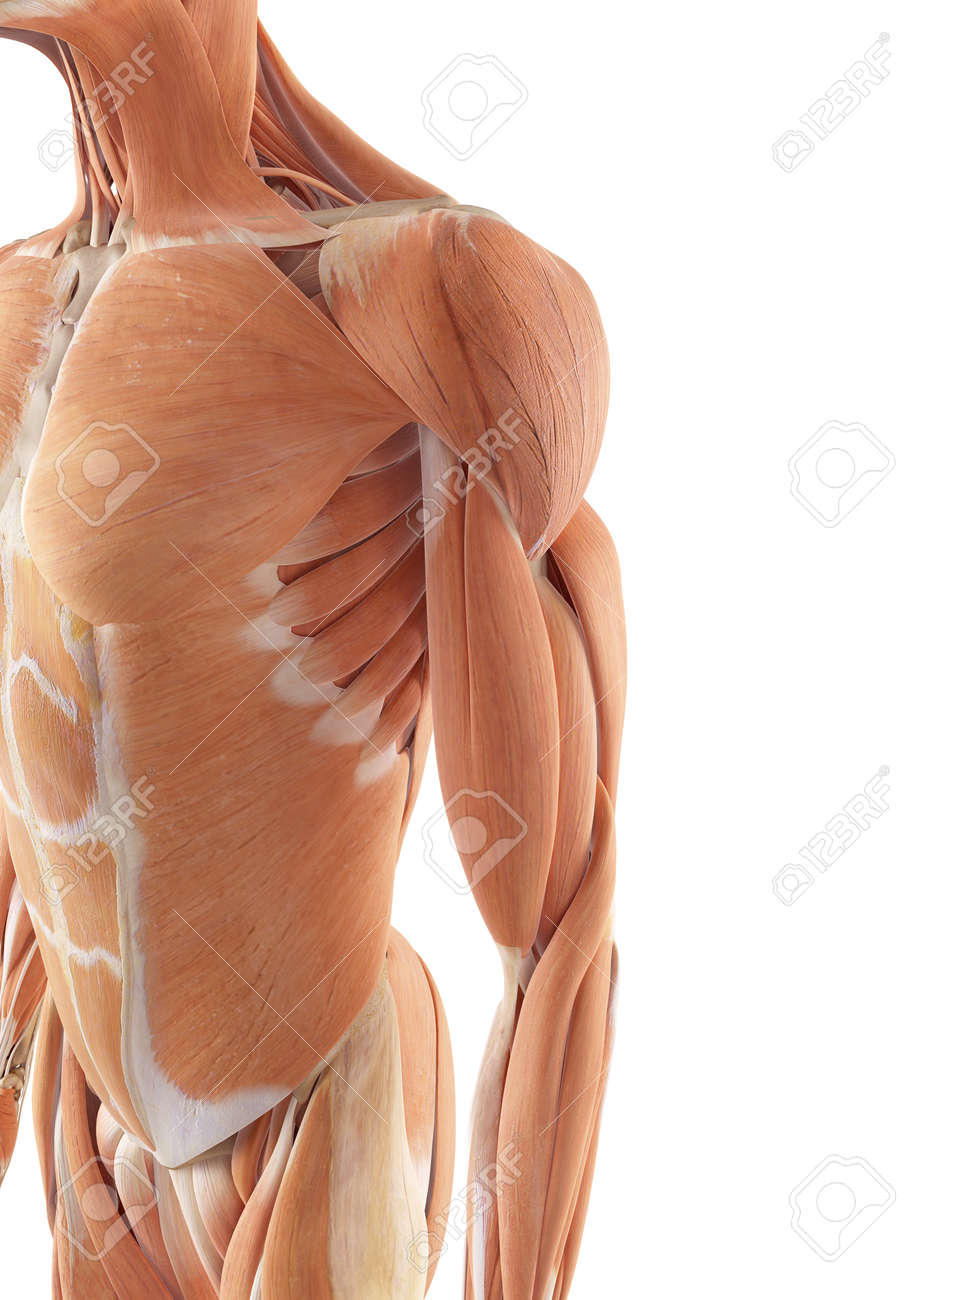 Medical Accurate Illustration Of The Shoulder Muscles Stock Photo